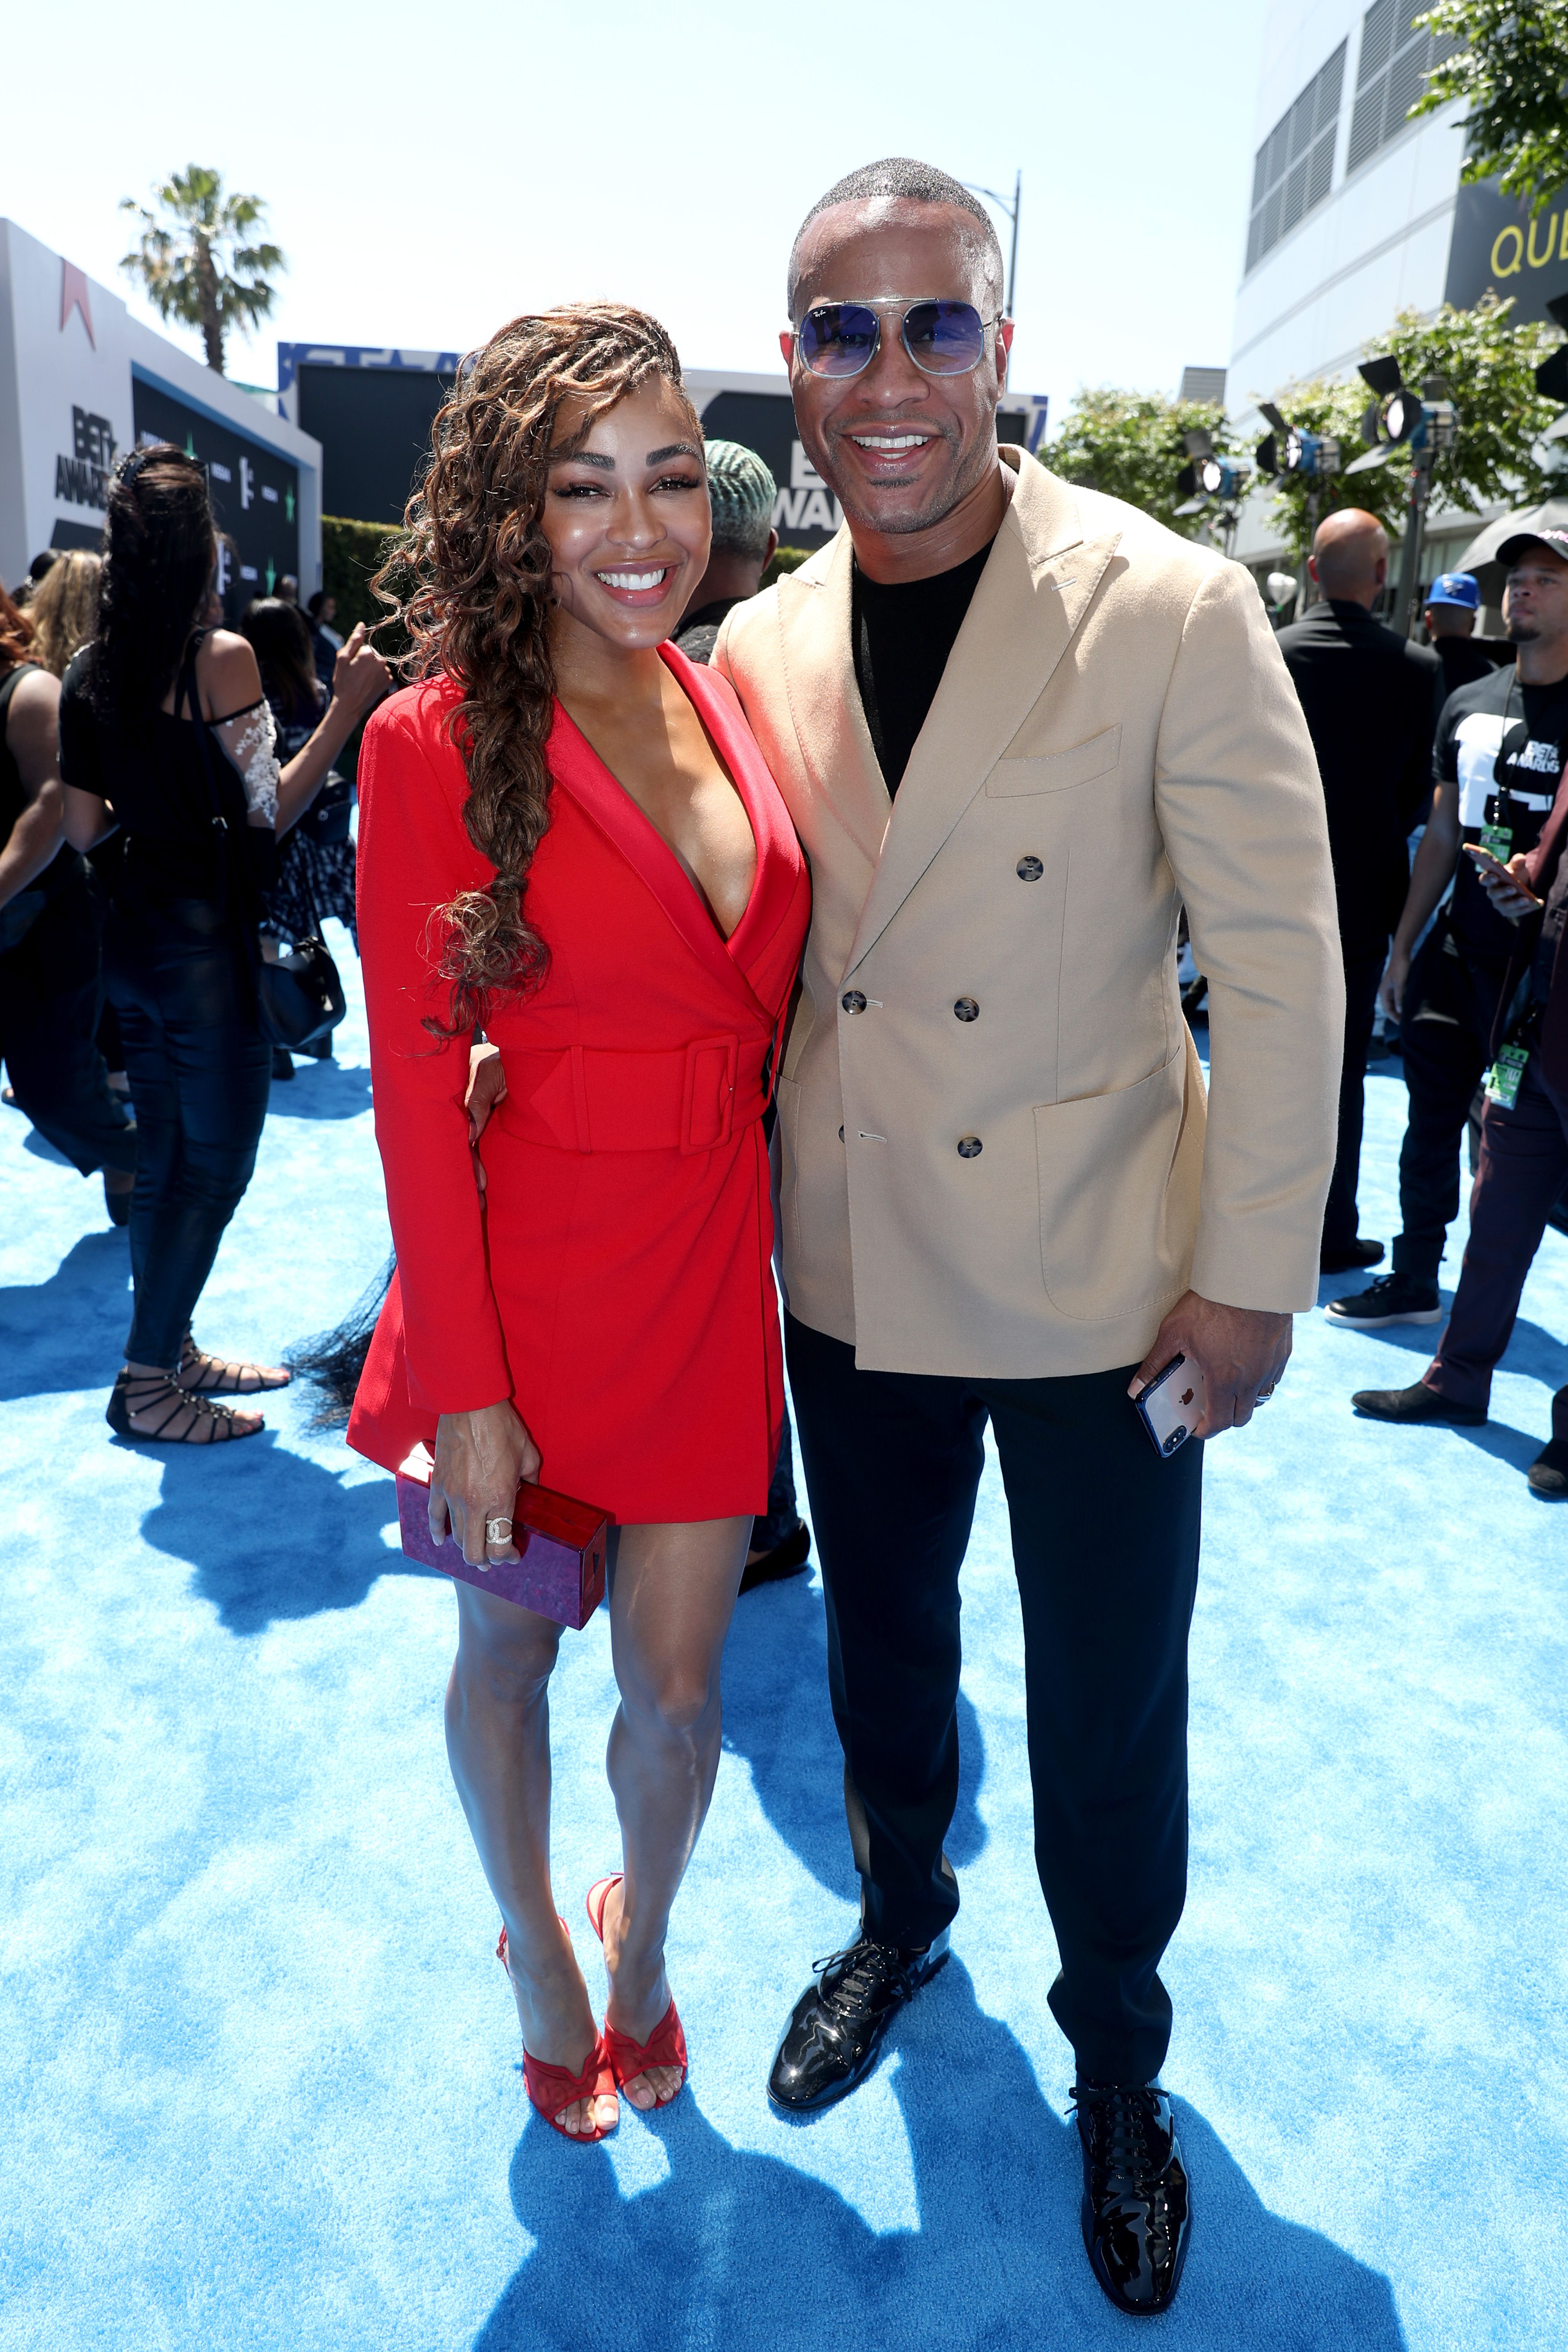 Meagan Good and DeVon Franklin at the BET Awards on June 23, 2019 in Los Angeles. | Photo: Getty Images